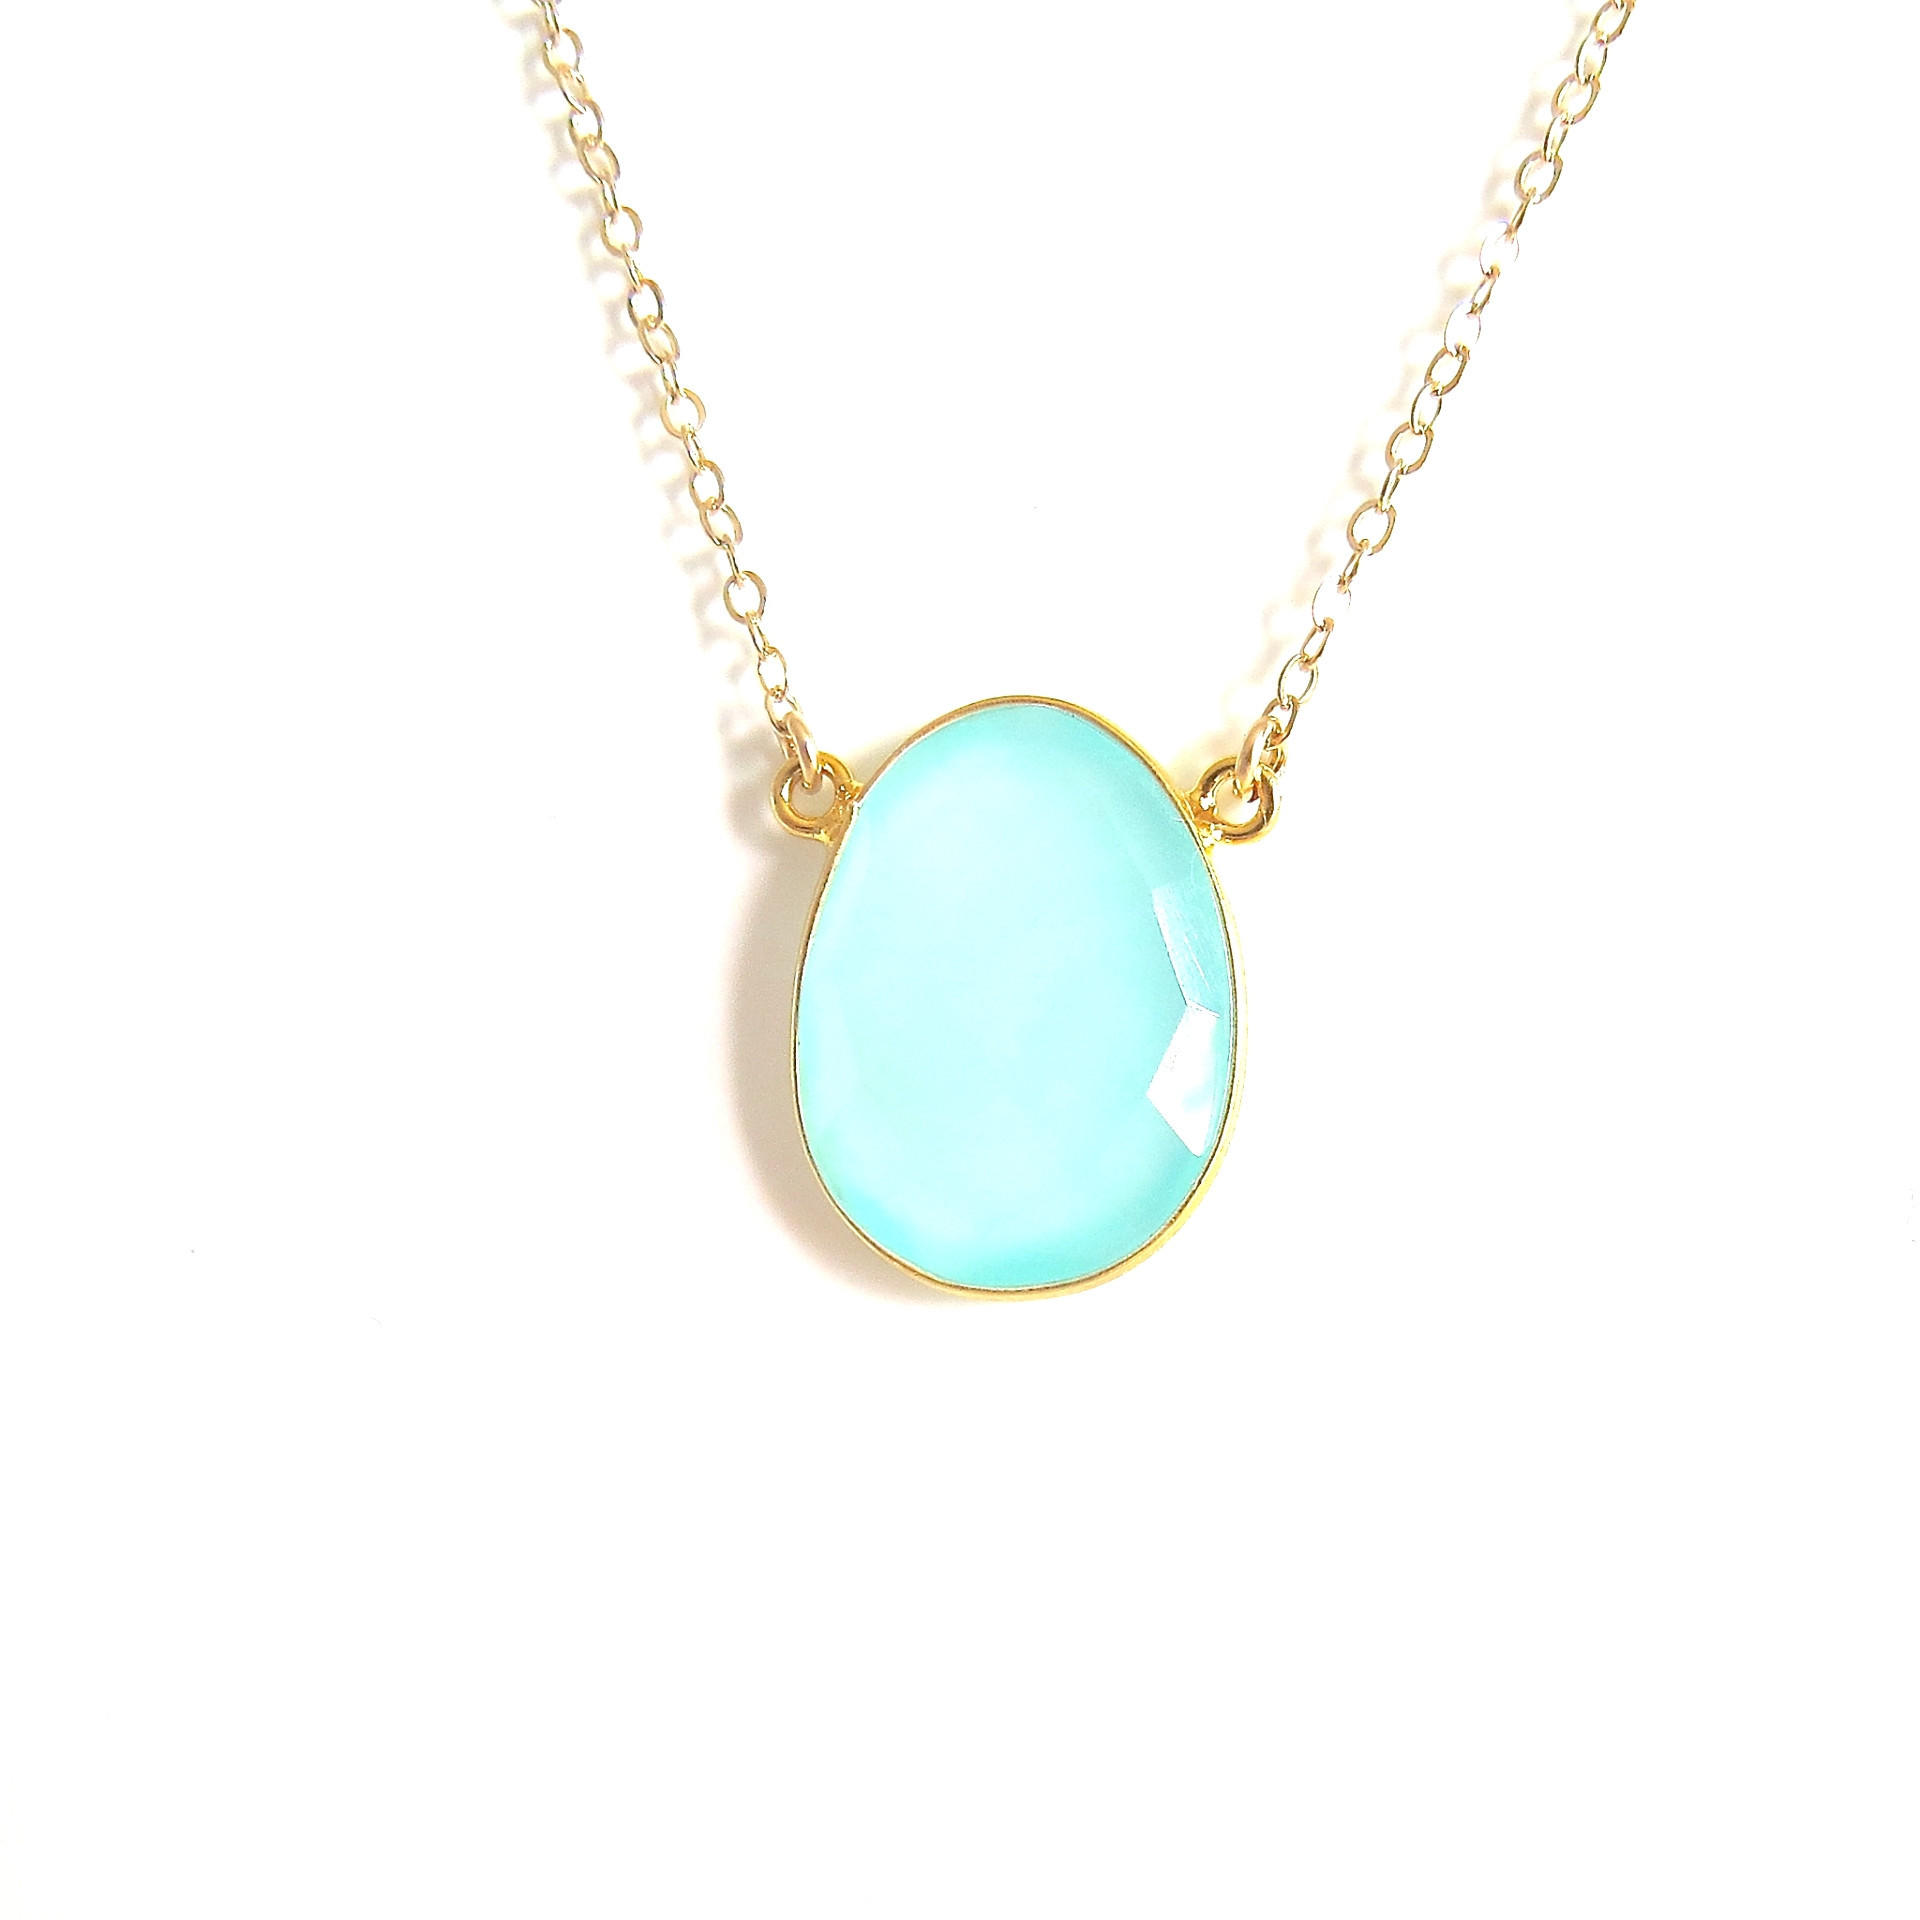 Image of Chalcedony Gold Pendant Necklace